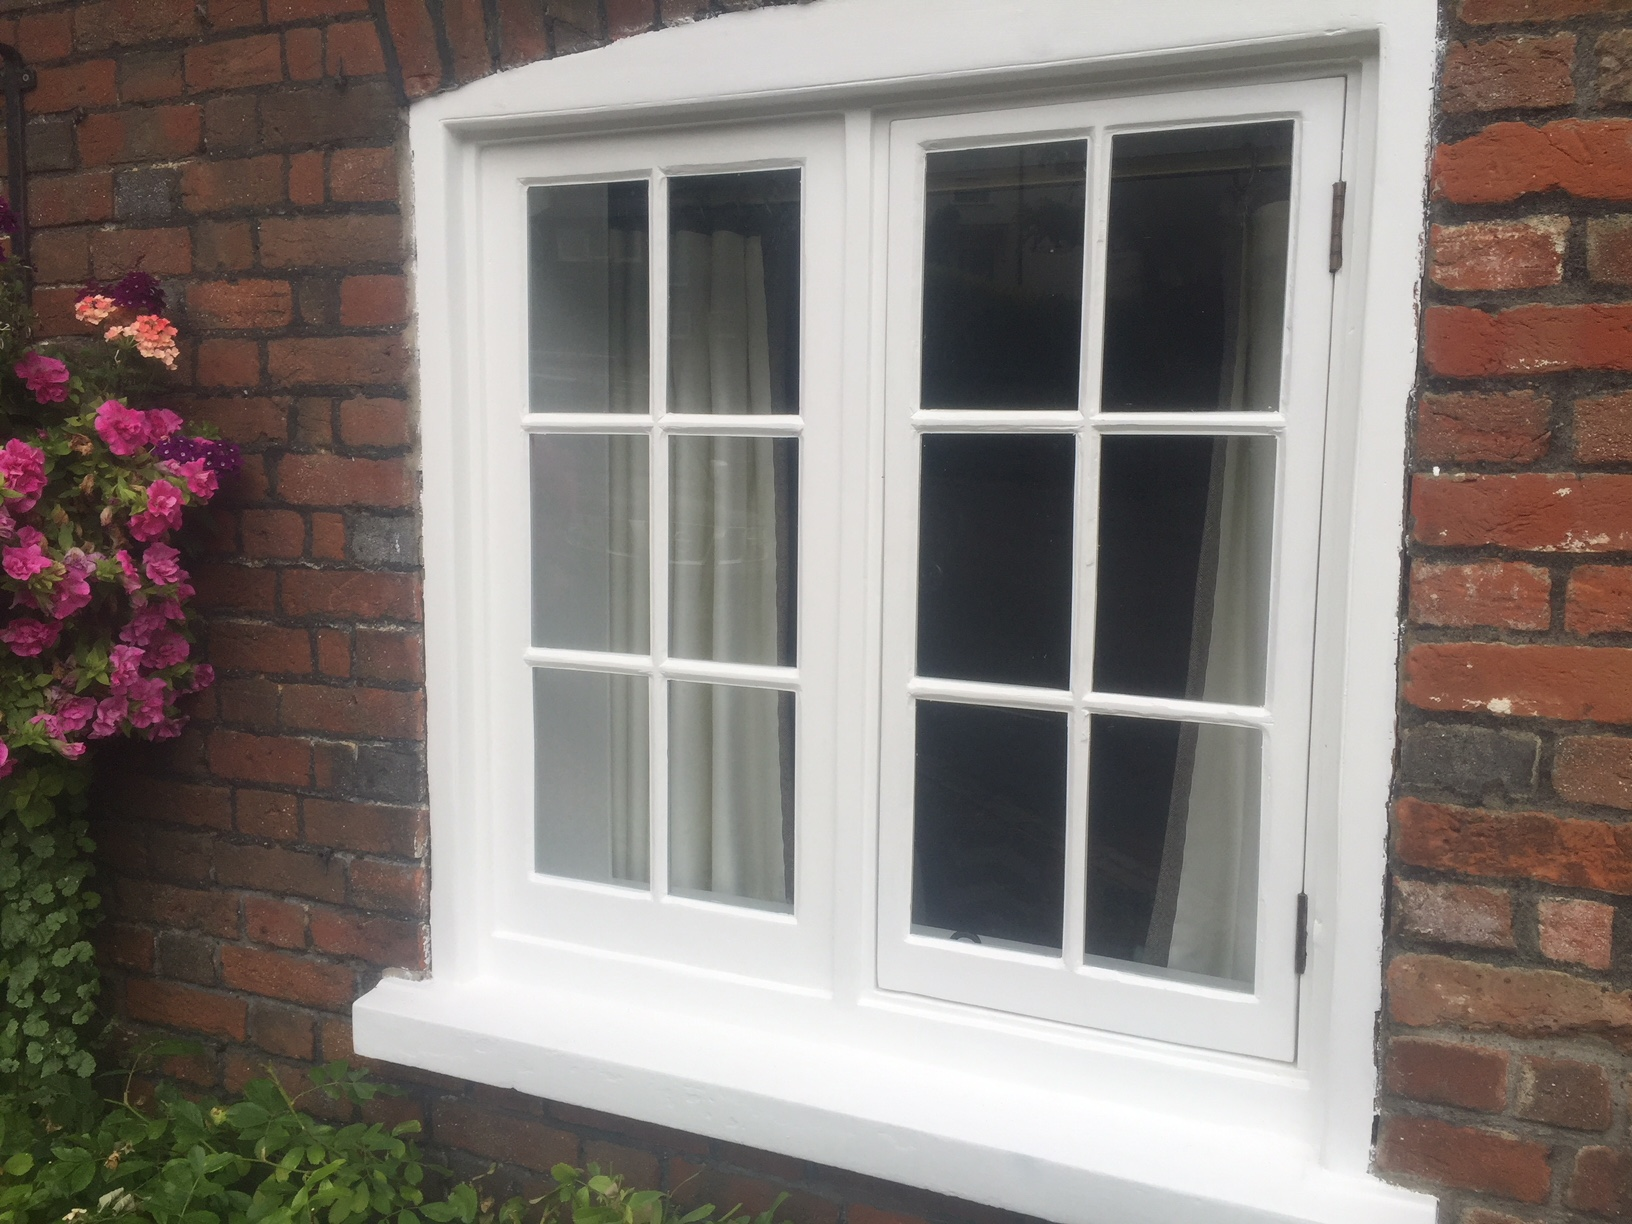 Timber casement window restoration in Thundridge, carried out by London & Herts Sash Windows